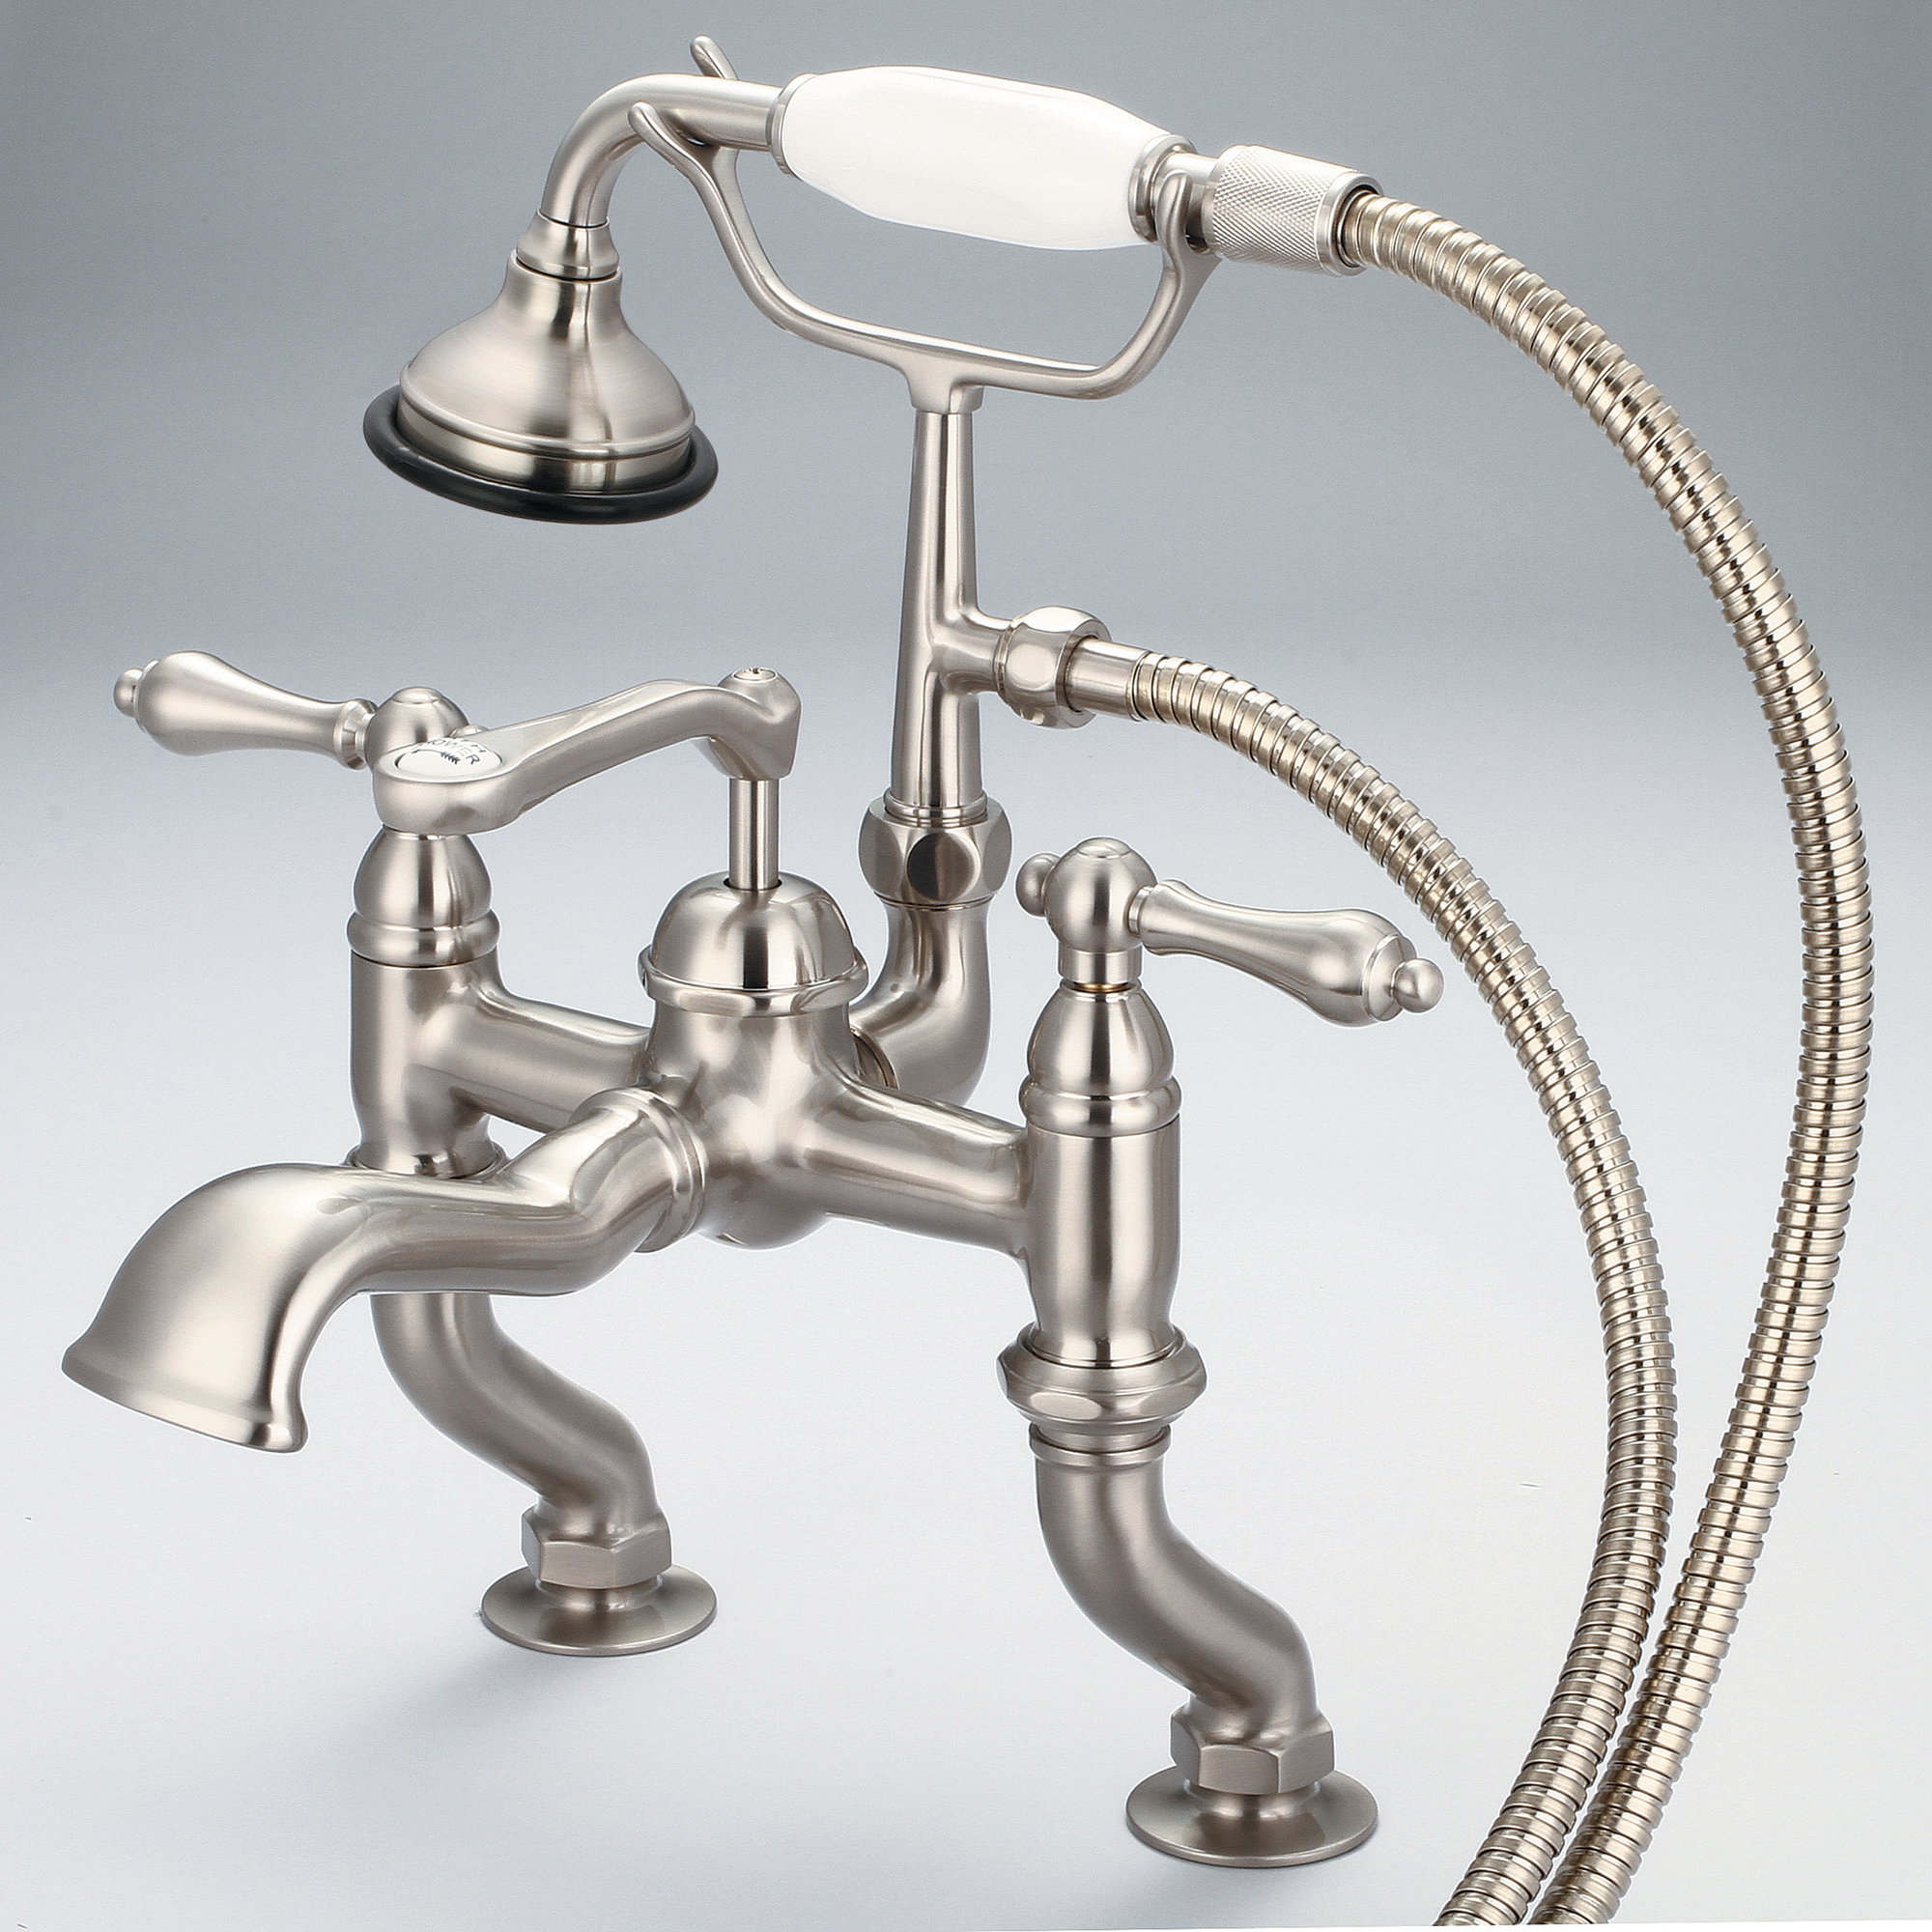 Vintage Classic Adjustable Center Deck Mount Tub Faucet With Handheld Shower in Brushed Nickel Finish With Metal Lever Handles Without Labels